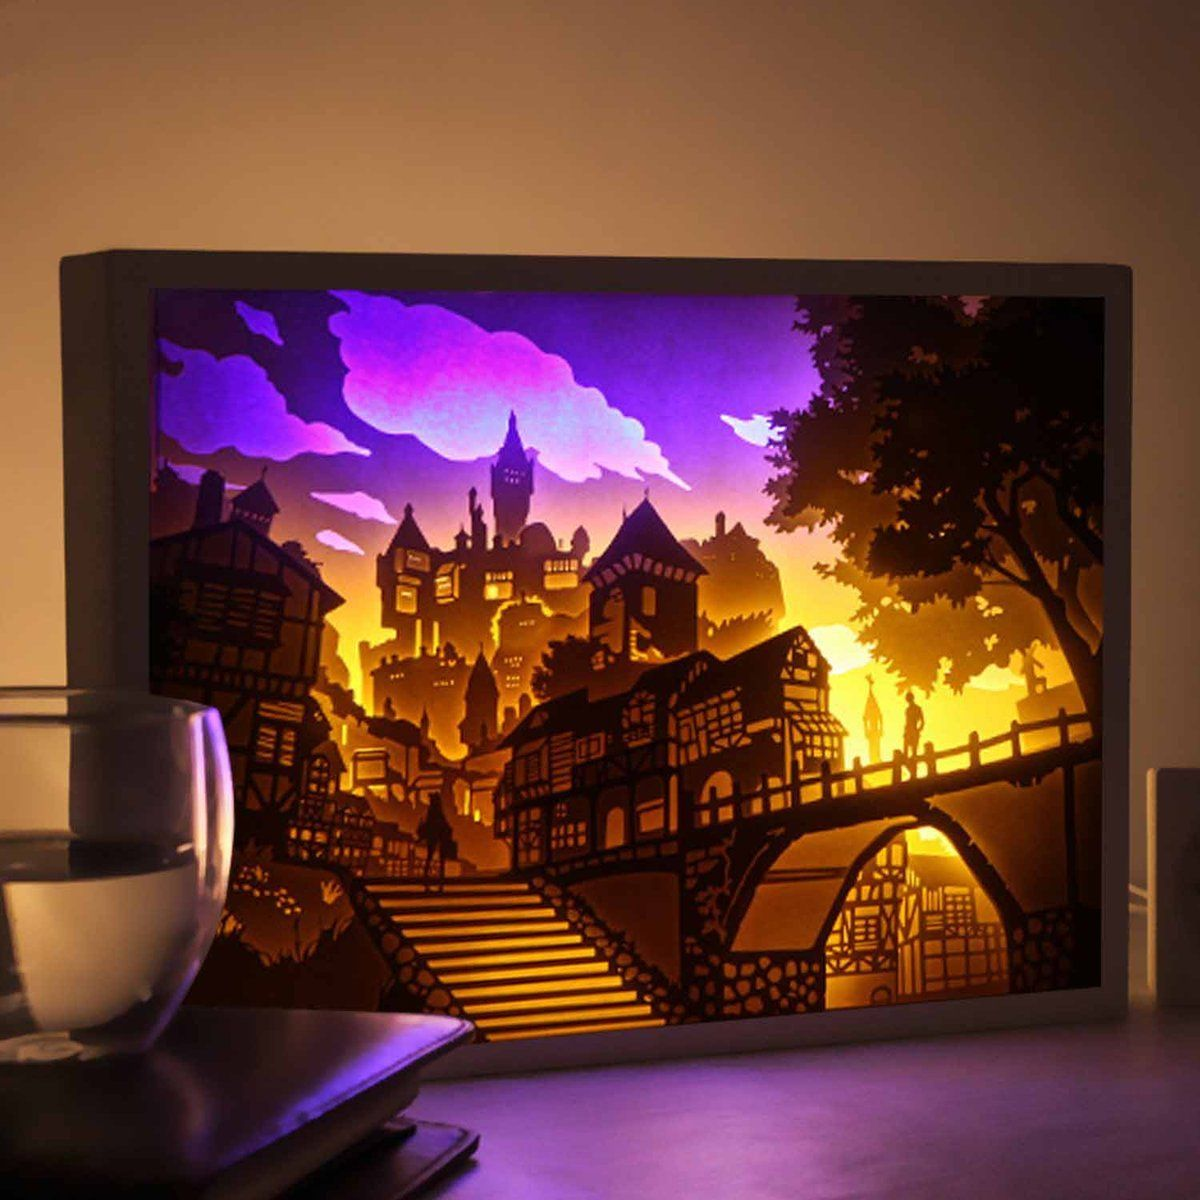 Features Of Product The Light Is Softer And Prettier Than General Night Light Brightness Adjustable Timing Function Shadow Box Art 3d Paper Art Paper Crafts